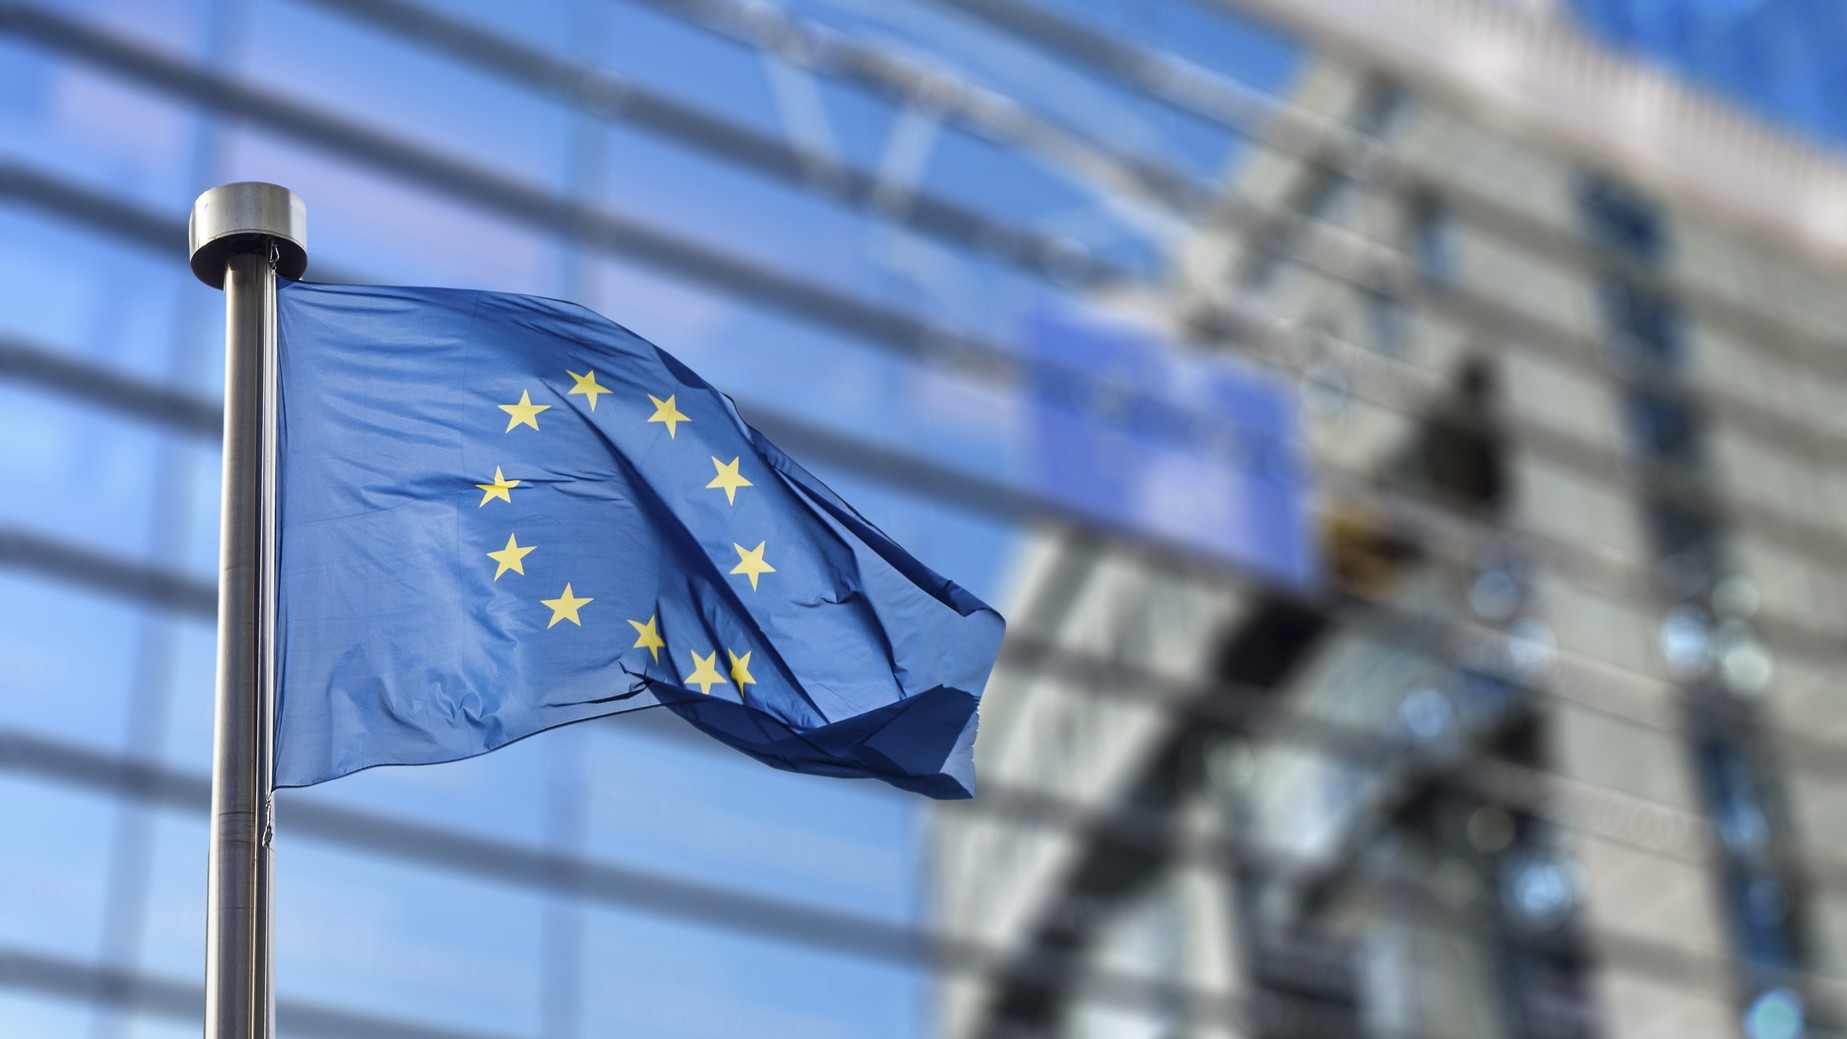 4.2. European Union (EU) guidelines - immagine 1